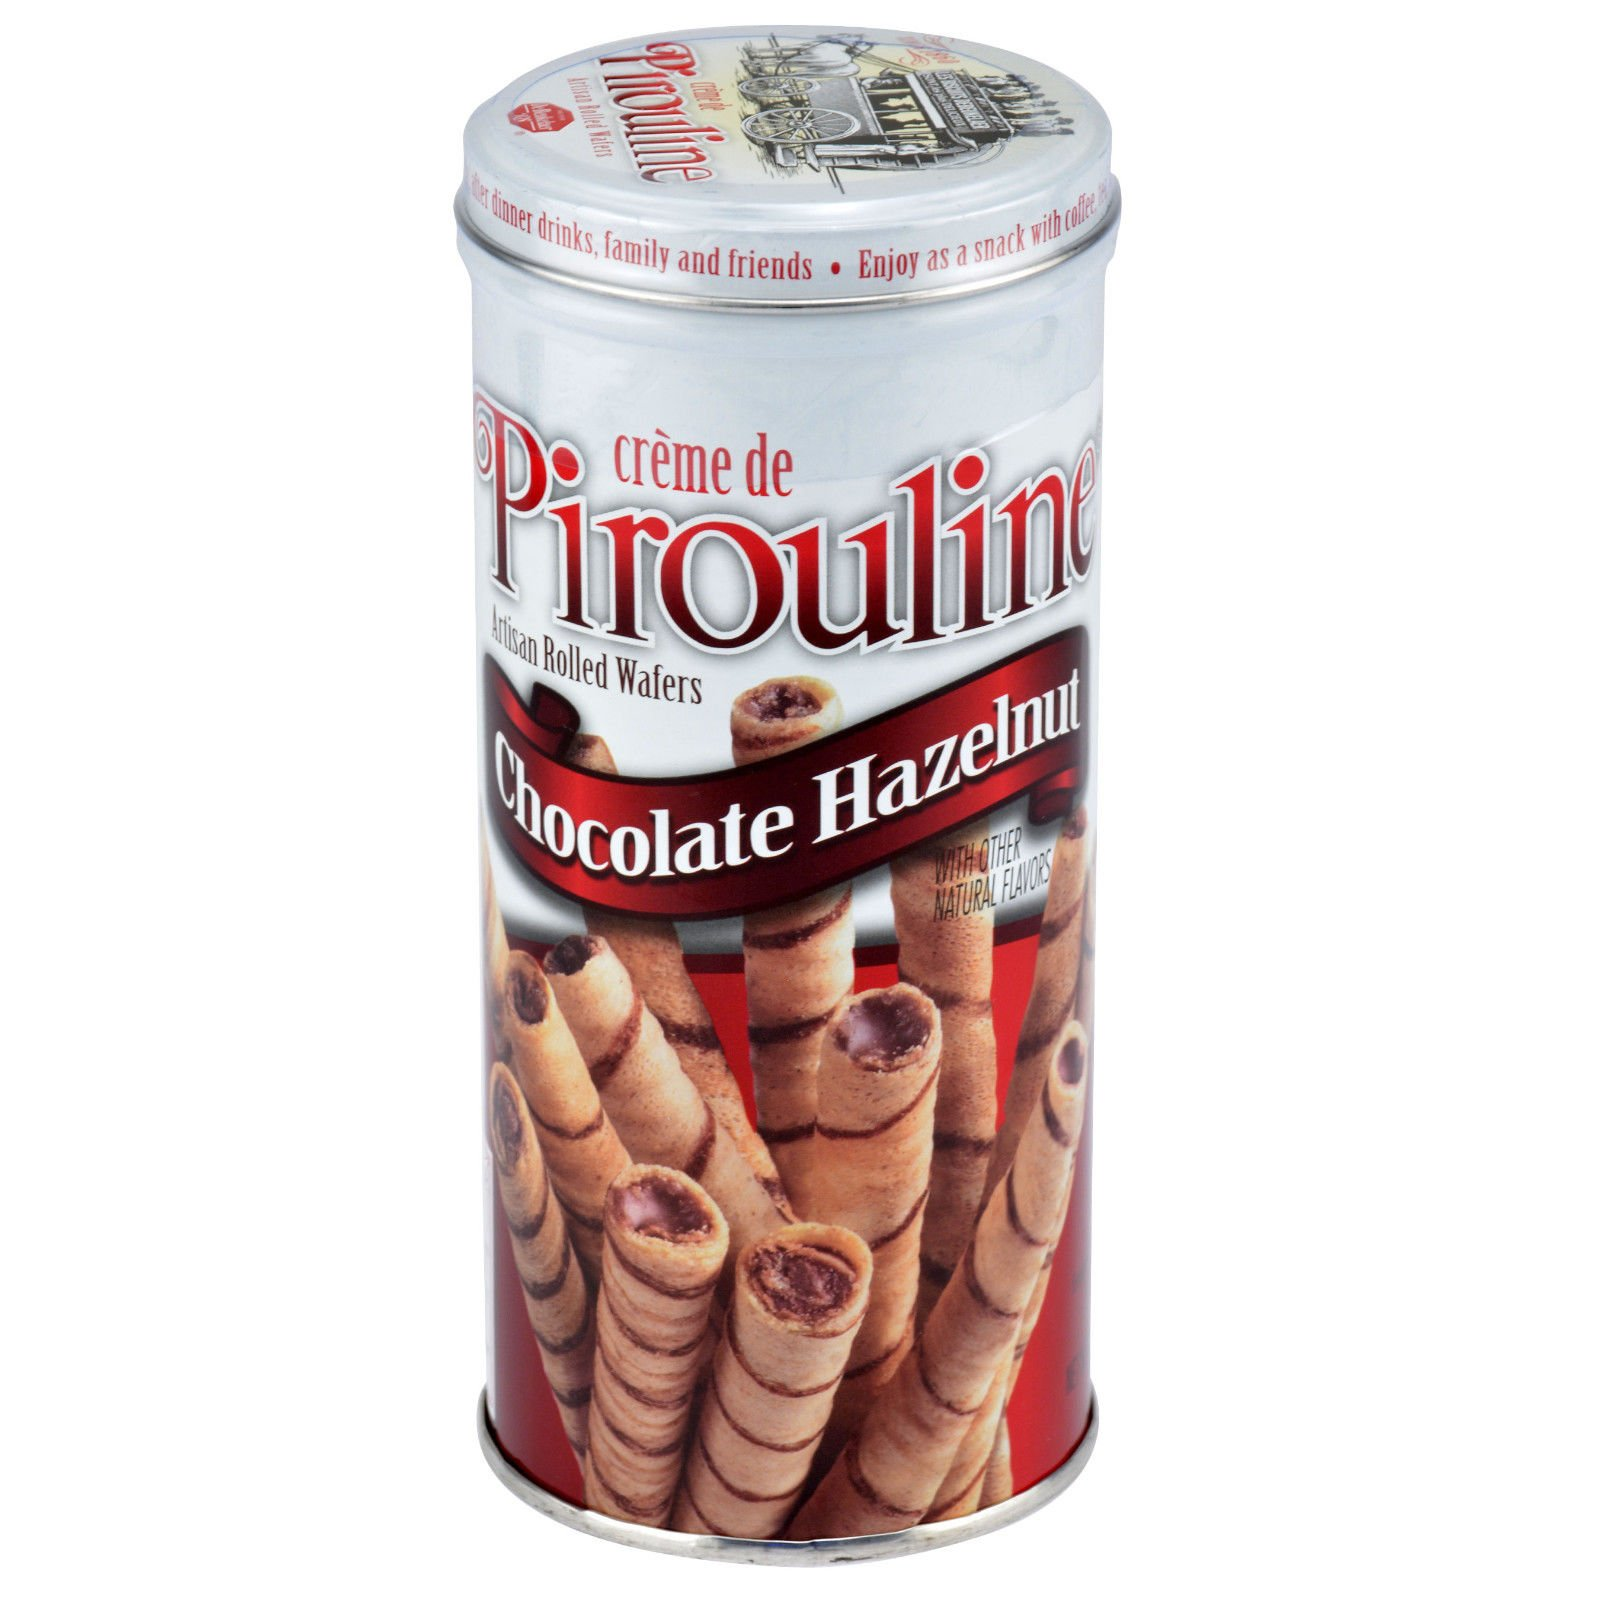 (Pack of 4) 3.25oz Tin Chocolate Hazelnut Pirouline Cream Filled Wafer Cookie (Comes with Free How to Live Stress Free Ebook)